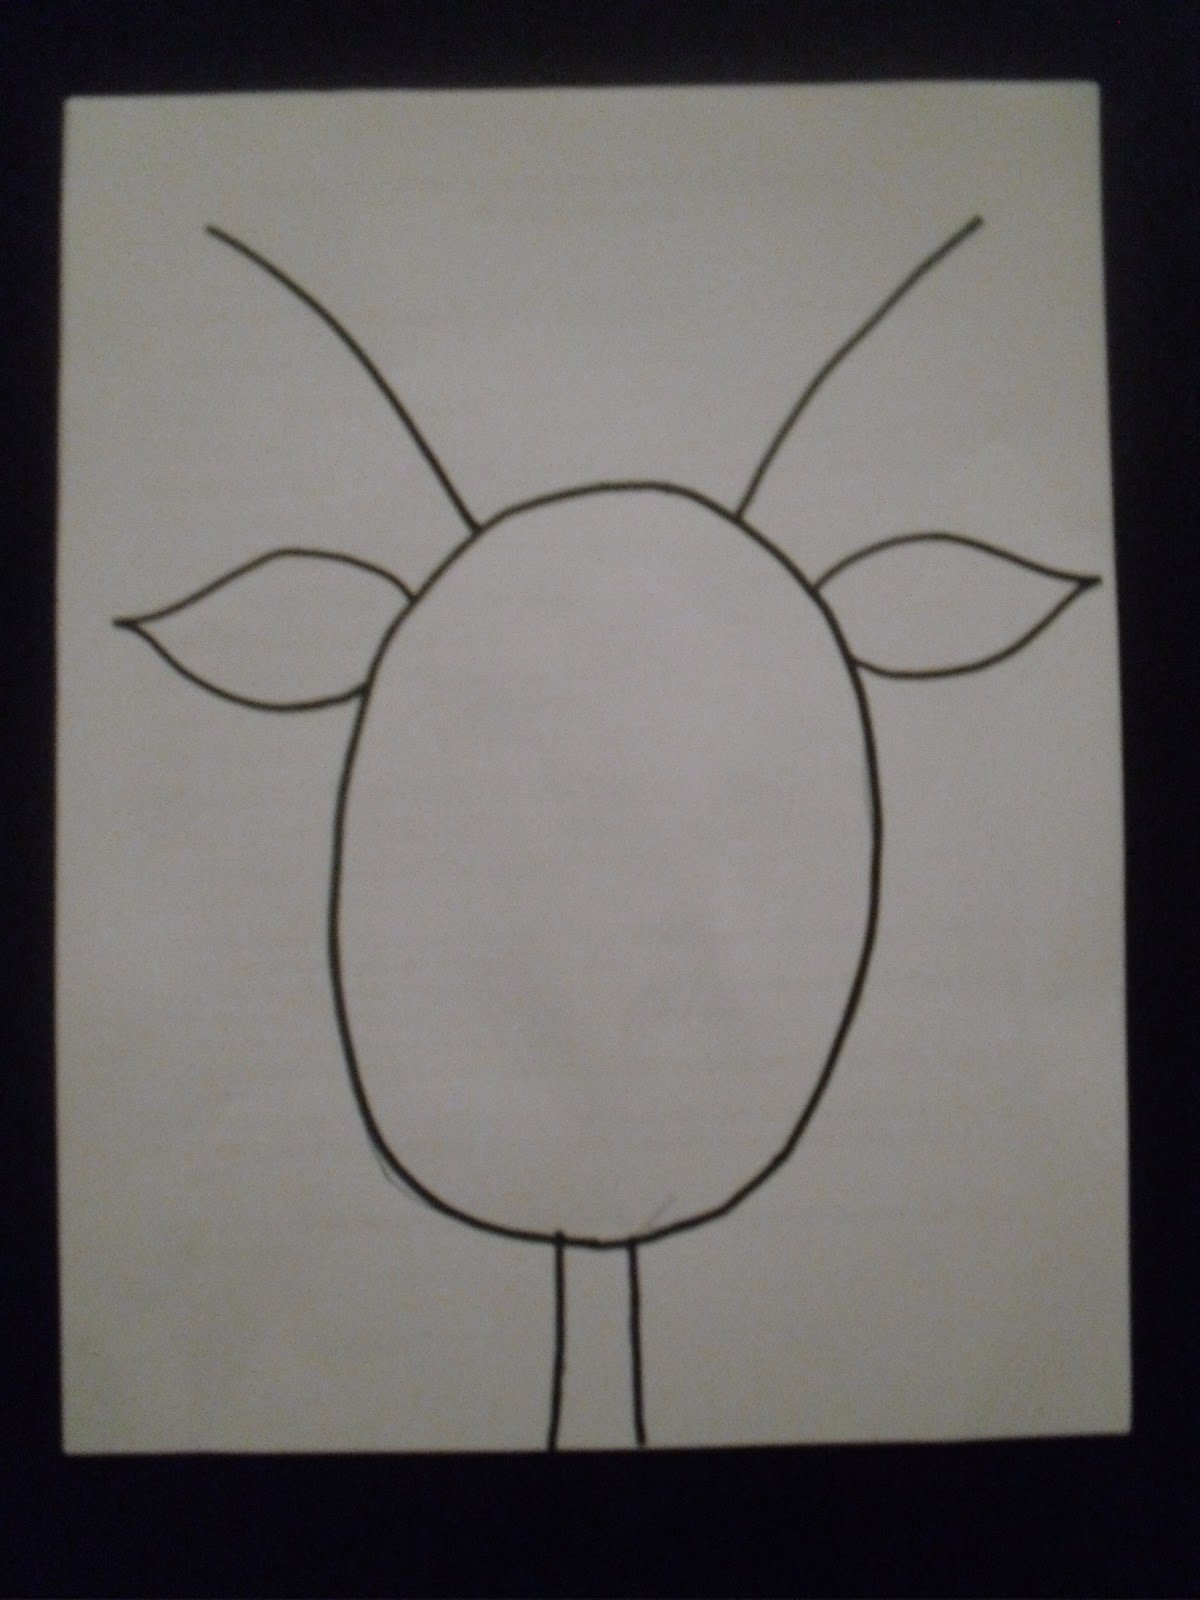 Drawn reindeer raindeer Draw the towards head each